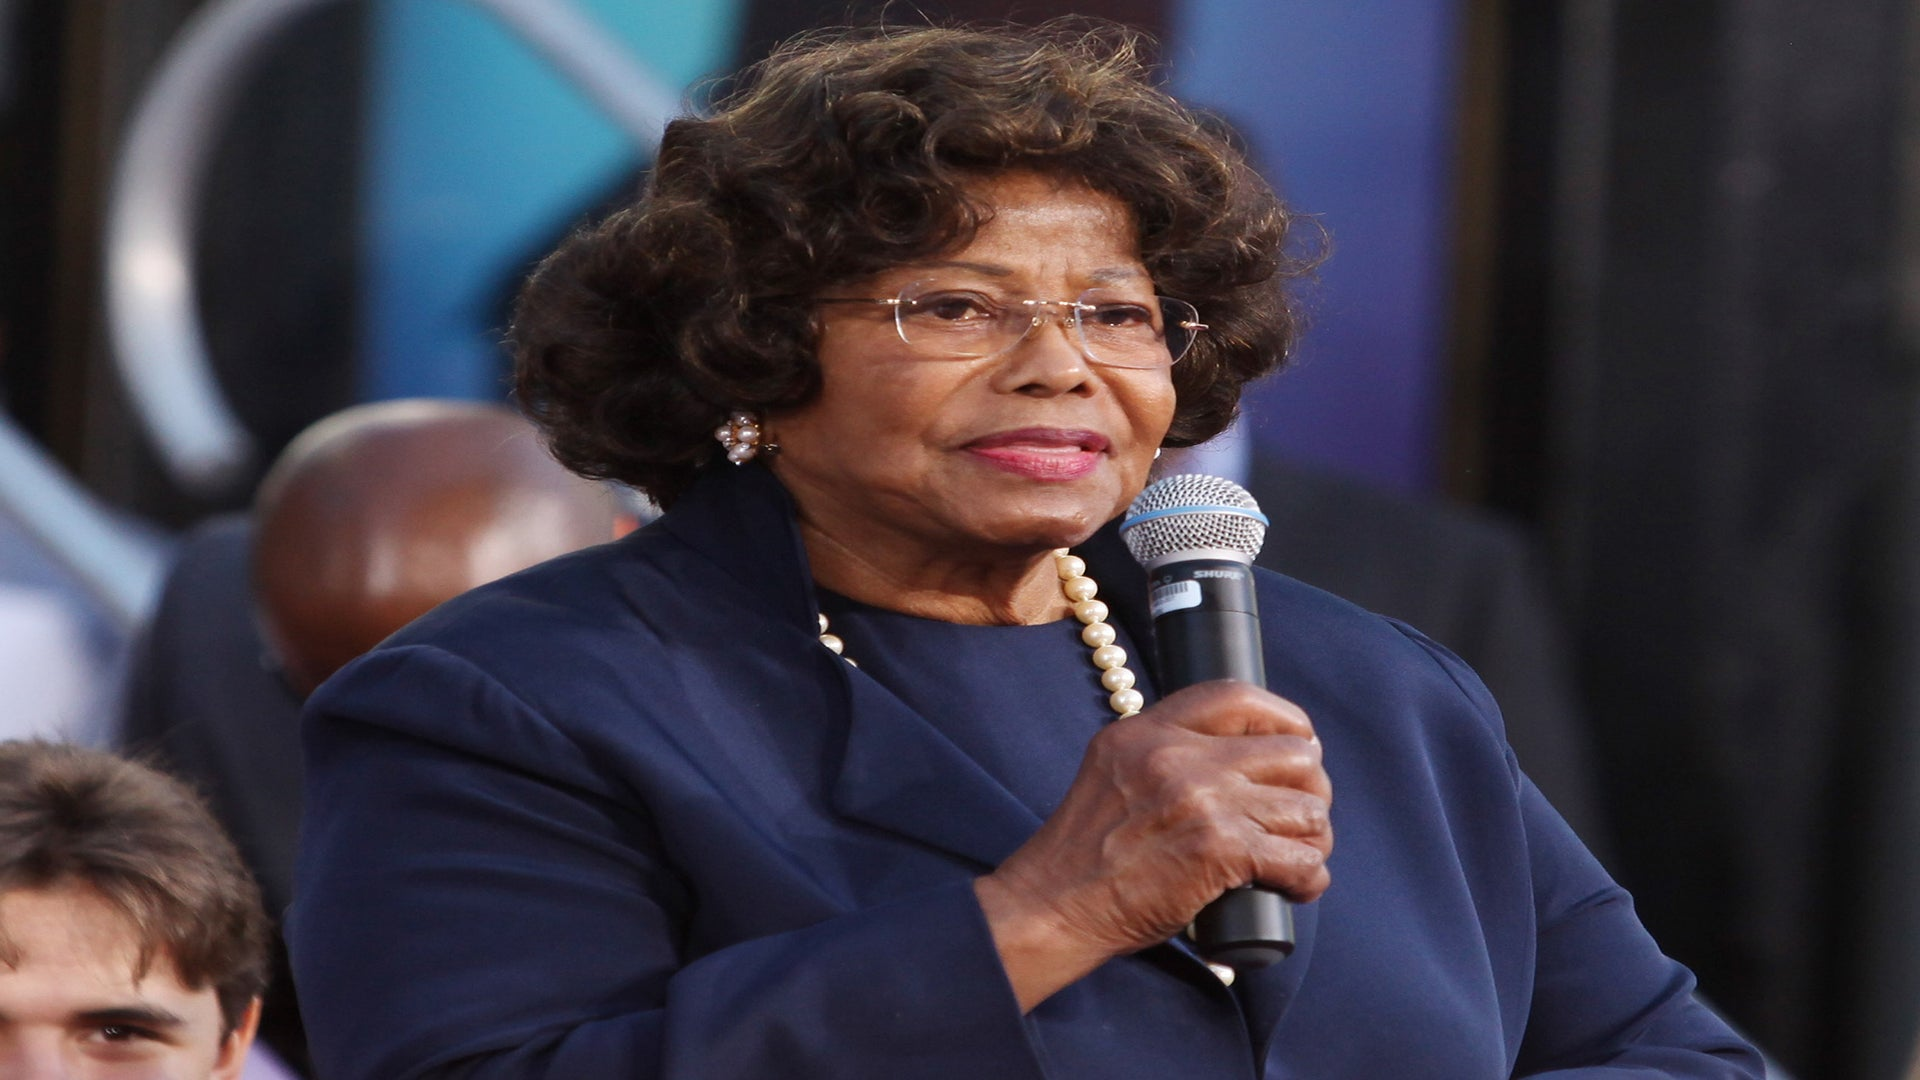 Katherine Jackson, Michael Jackson's Mother, Alleges Ongoing Elder Abuse At The Hands Of Her Nephew